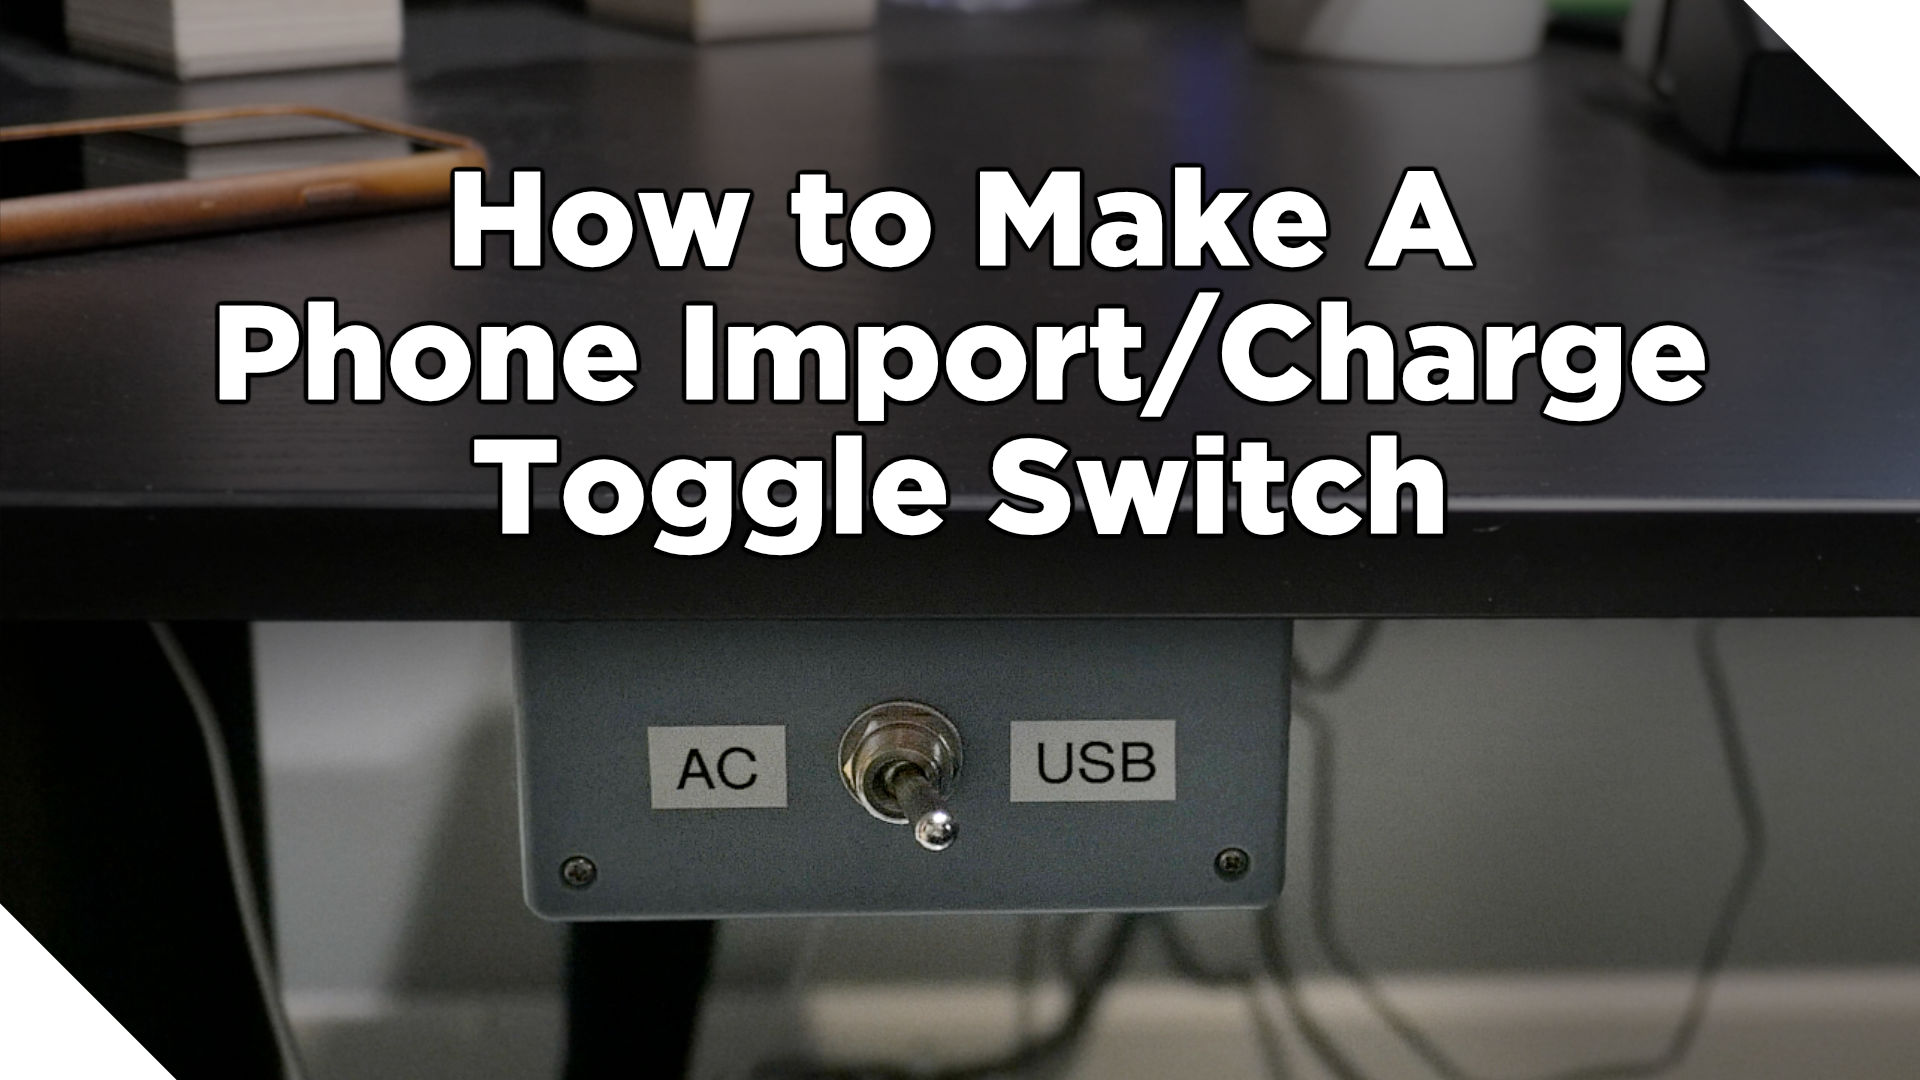 Cheap DIY Phone Import/Charge Toggle Switch